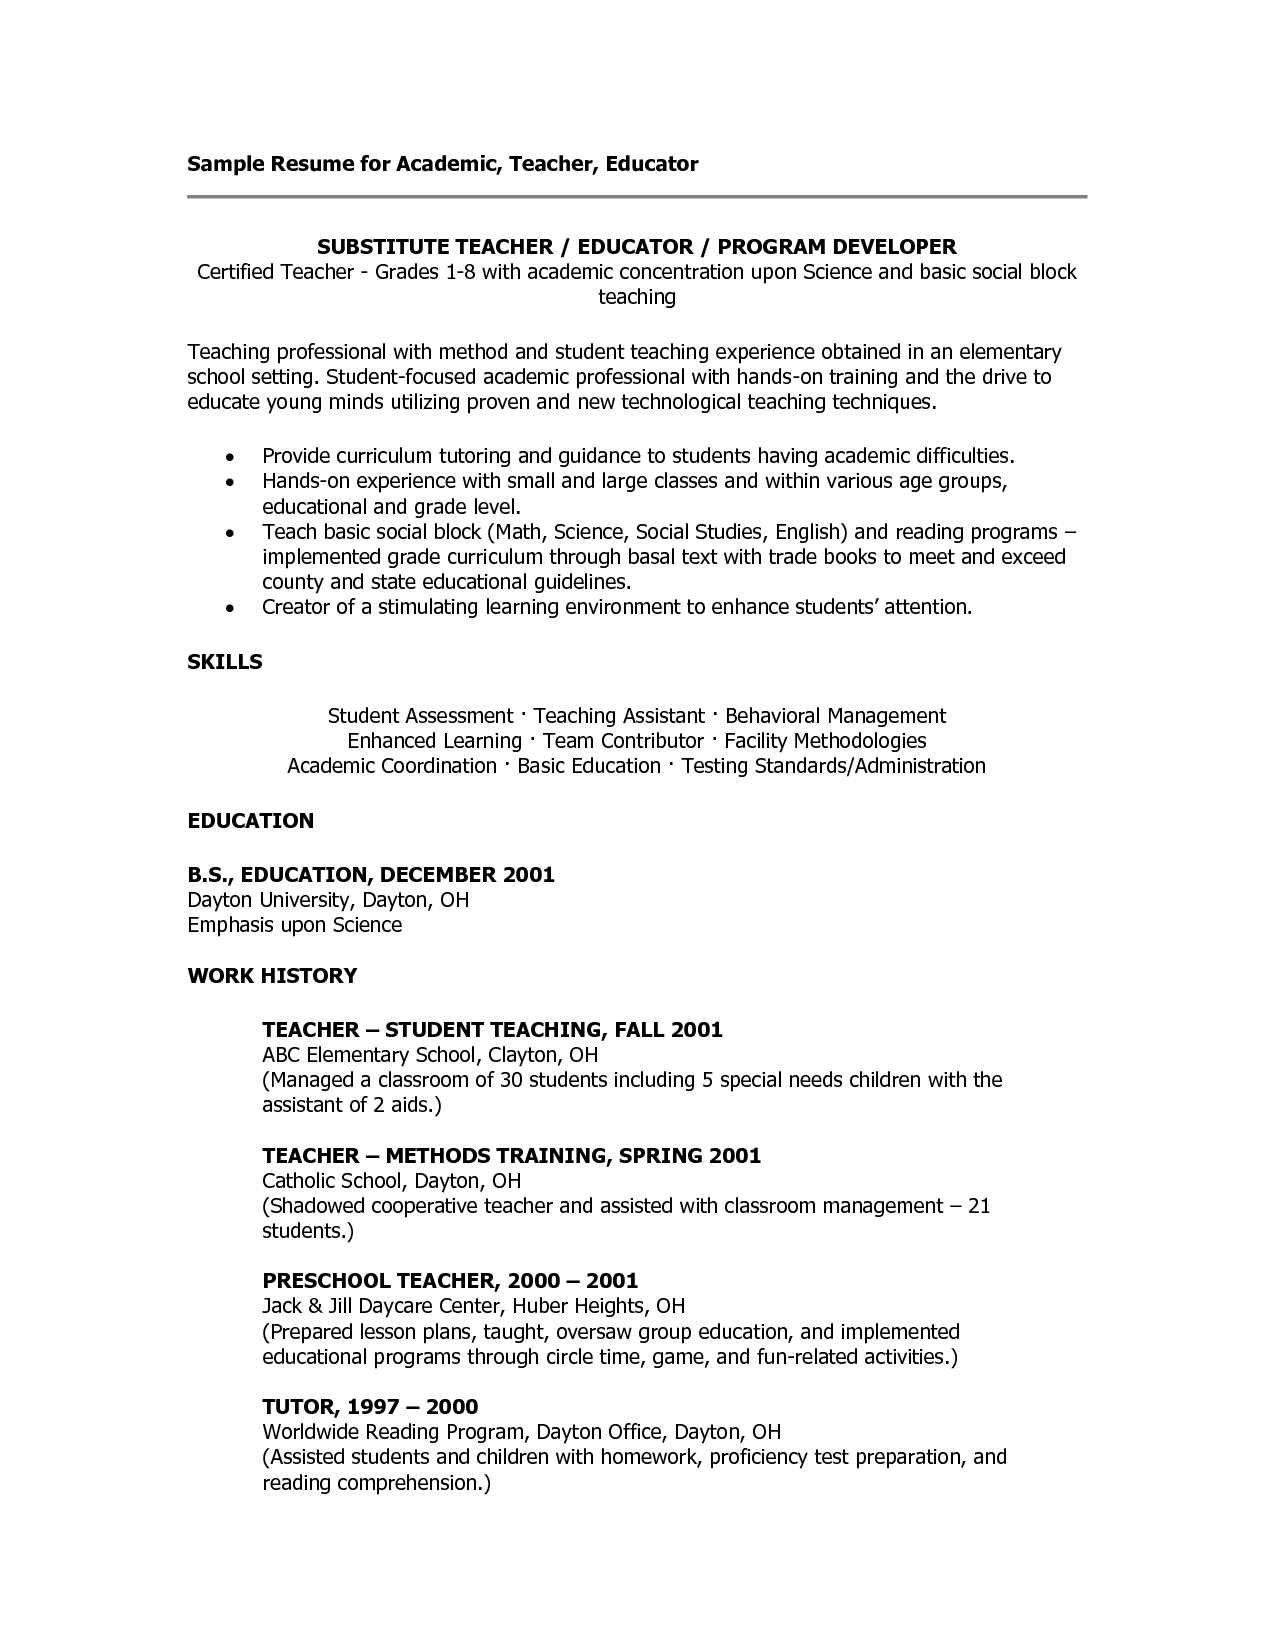 Resume Builder Uga Sample Teacher Resumes  Substitute Teacher Resume  Fcs